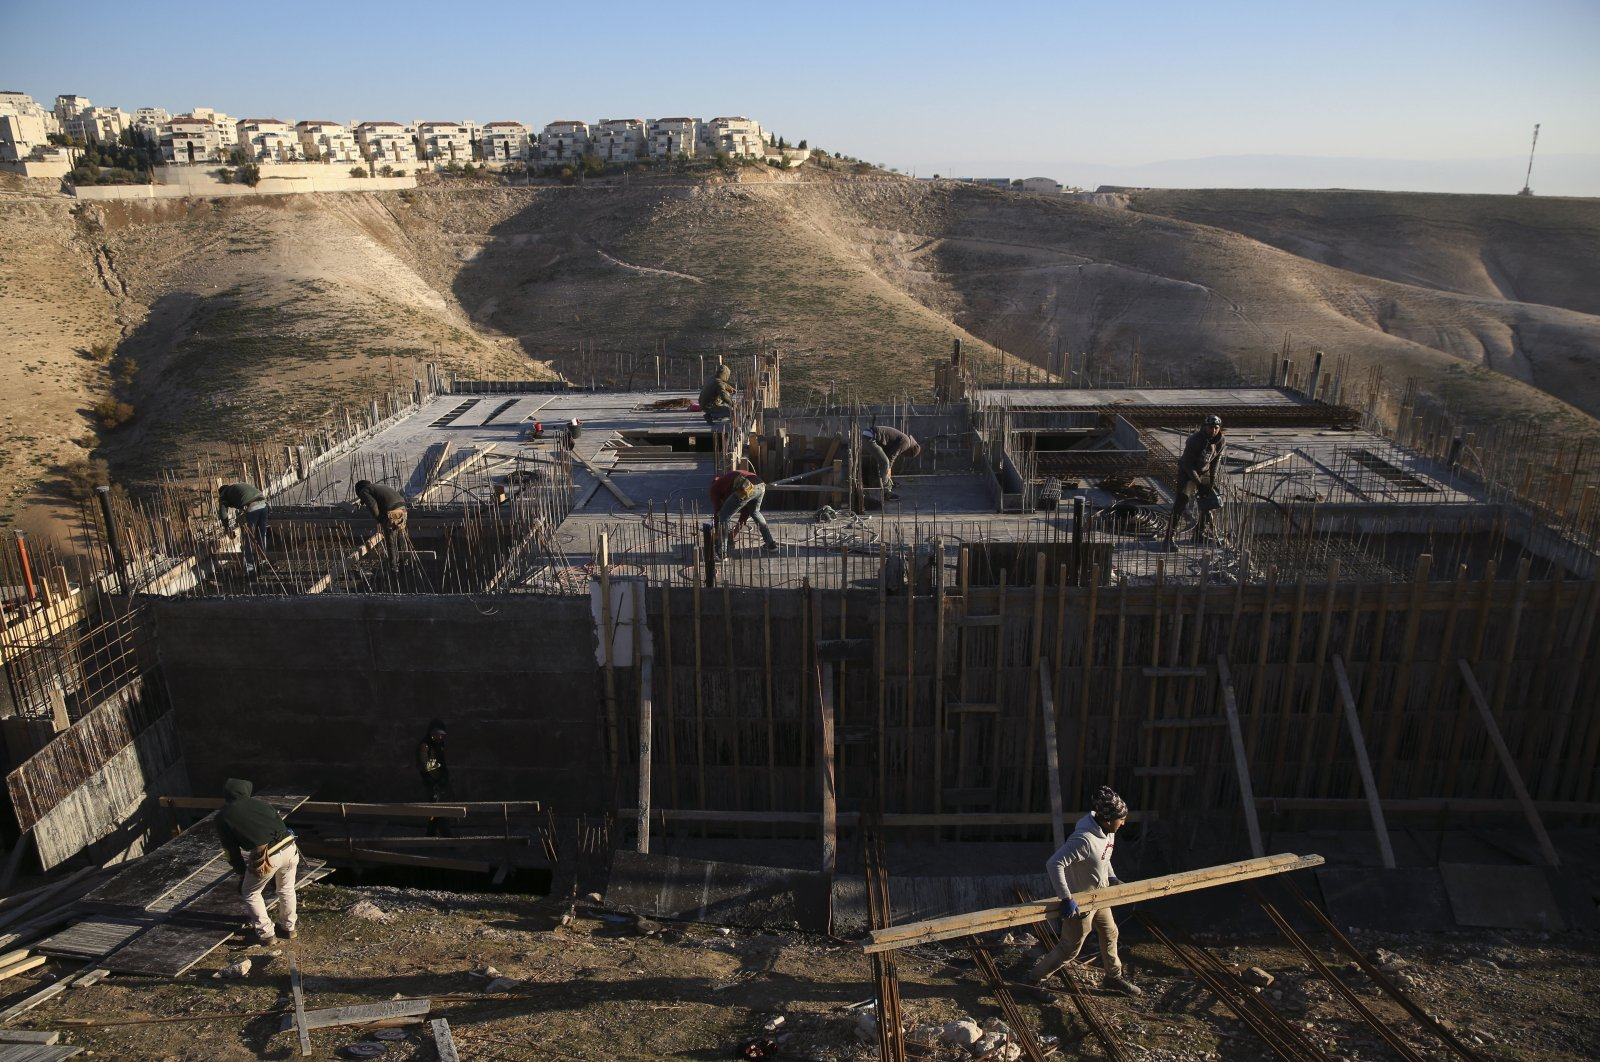 Palestinian laborers work at a construction site in the Israeli settlement of Maale Adumim, near Jerusalem, in the occupied West Bank, Palestine, Feb. 7, 2017. (AP Photo)